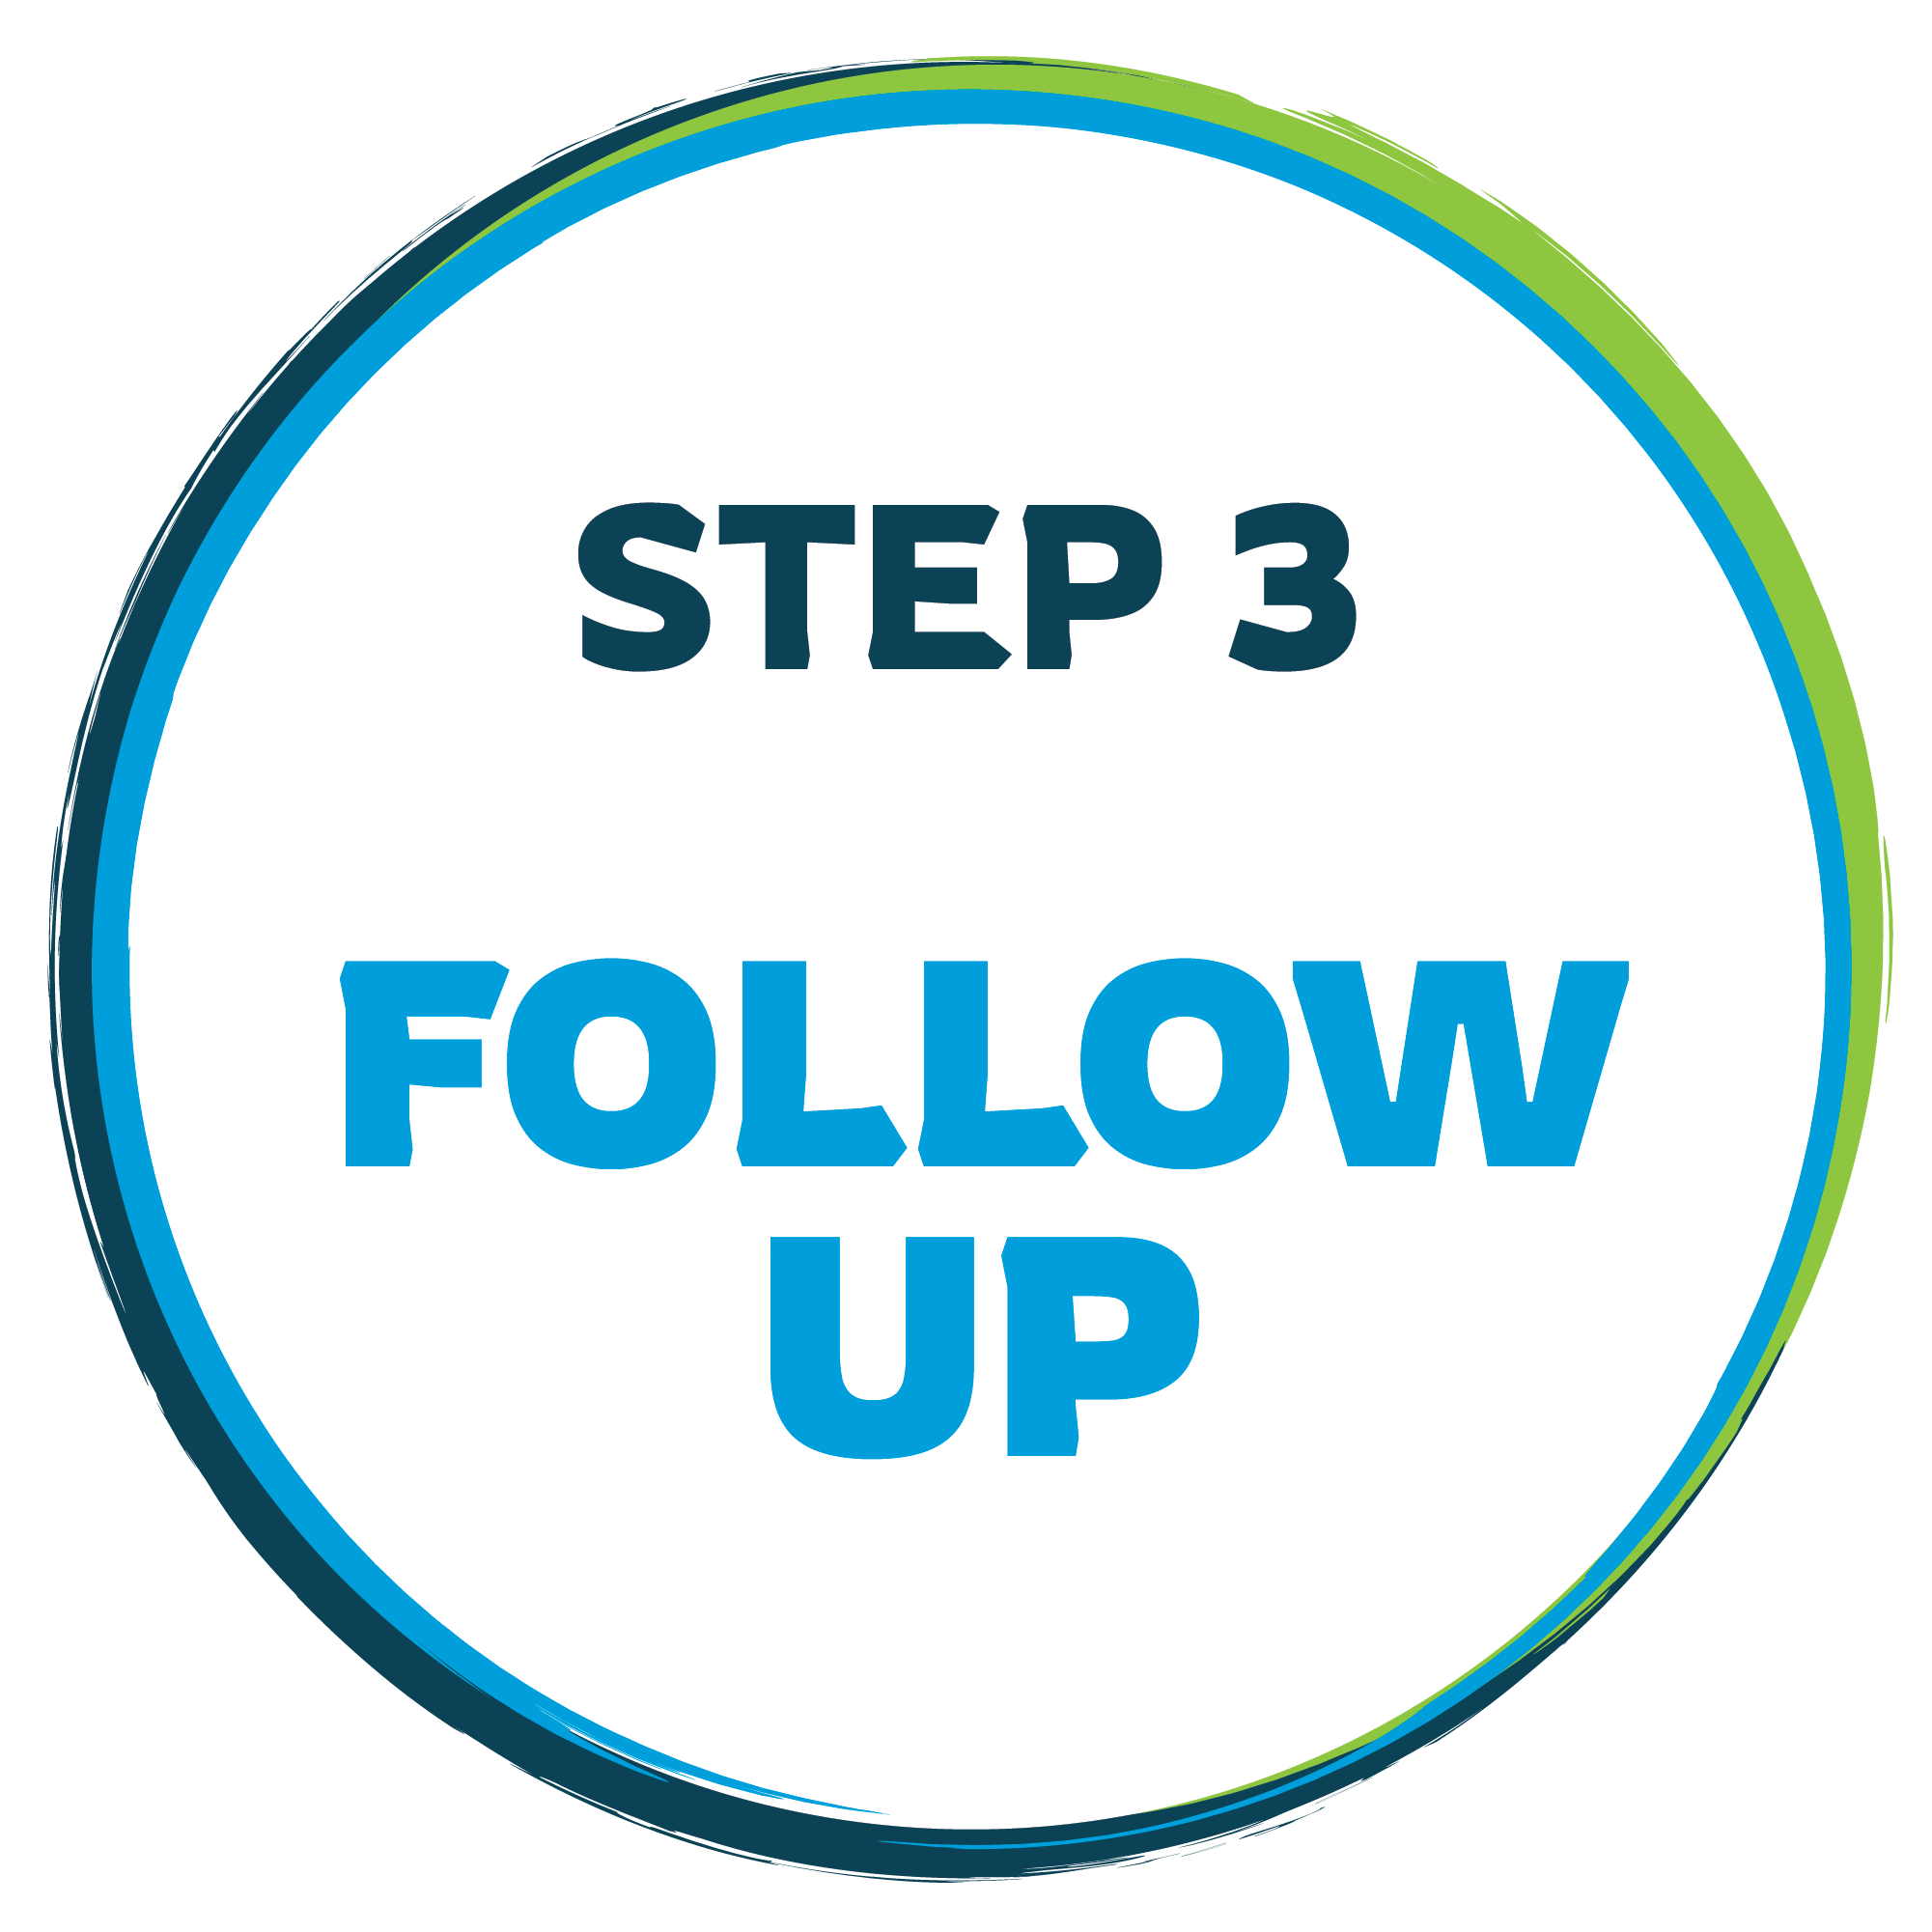 step 3 follow up graphic